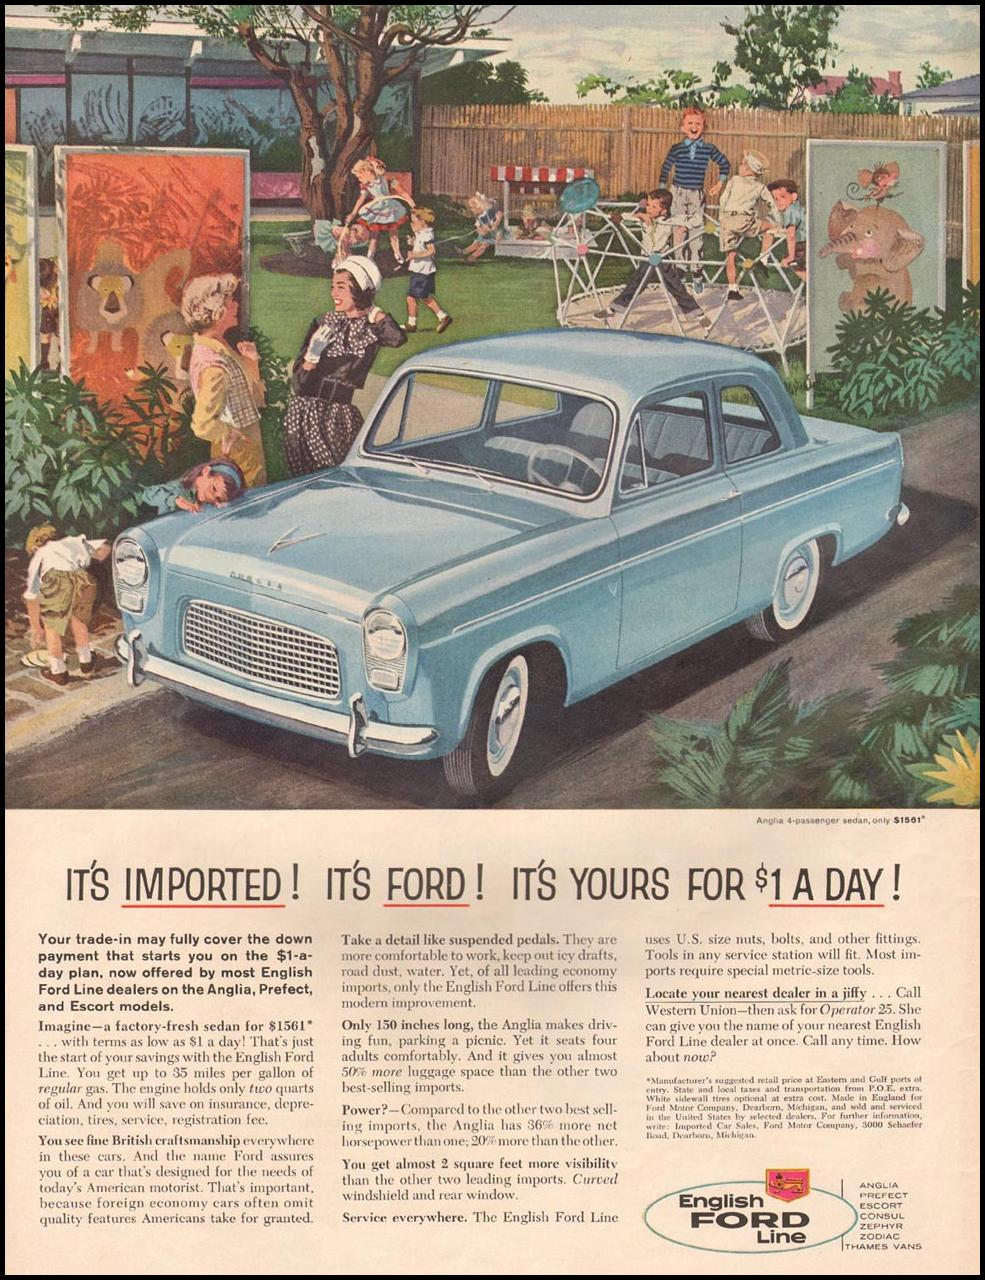 FORD AUTOMOBILES LIFE 08/10/1959